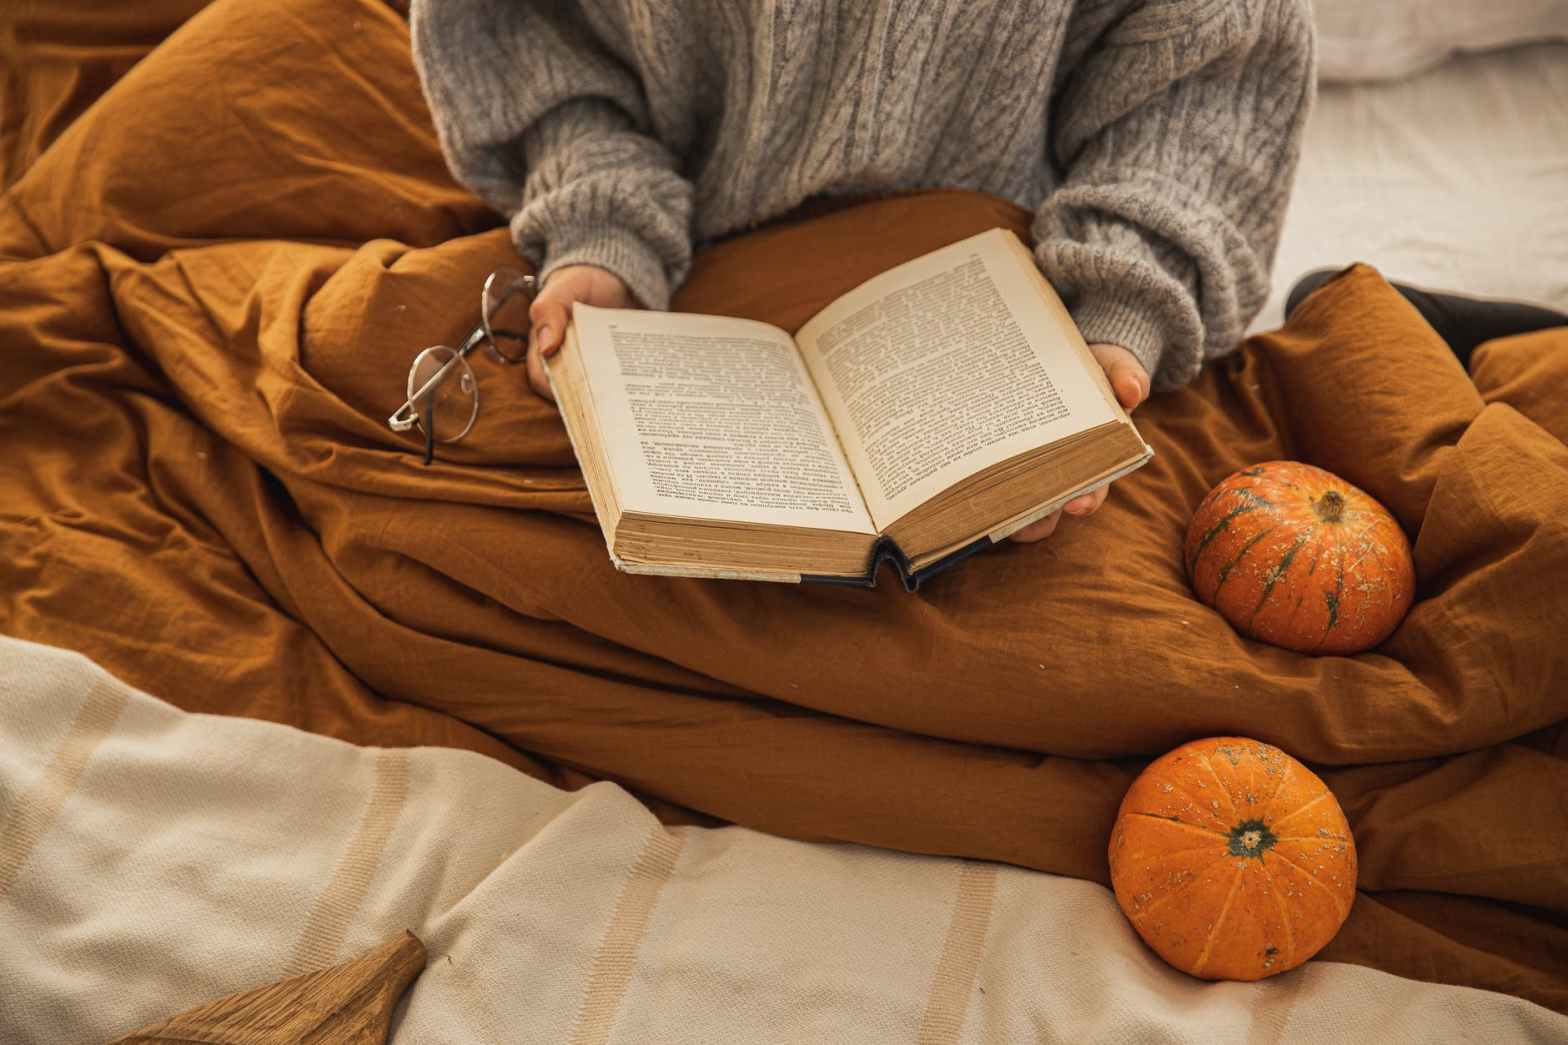 Someone reads a book in bed, with 2 pumpkins beside them.